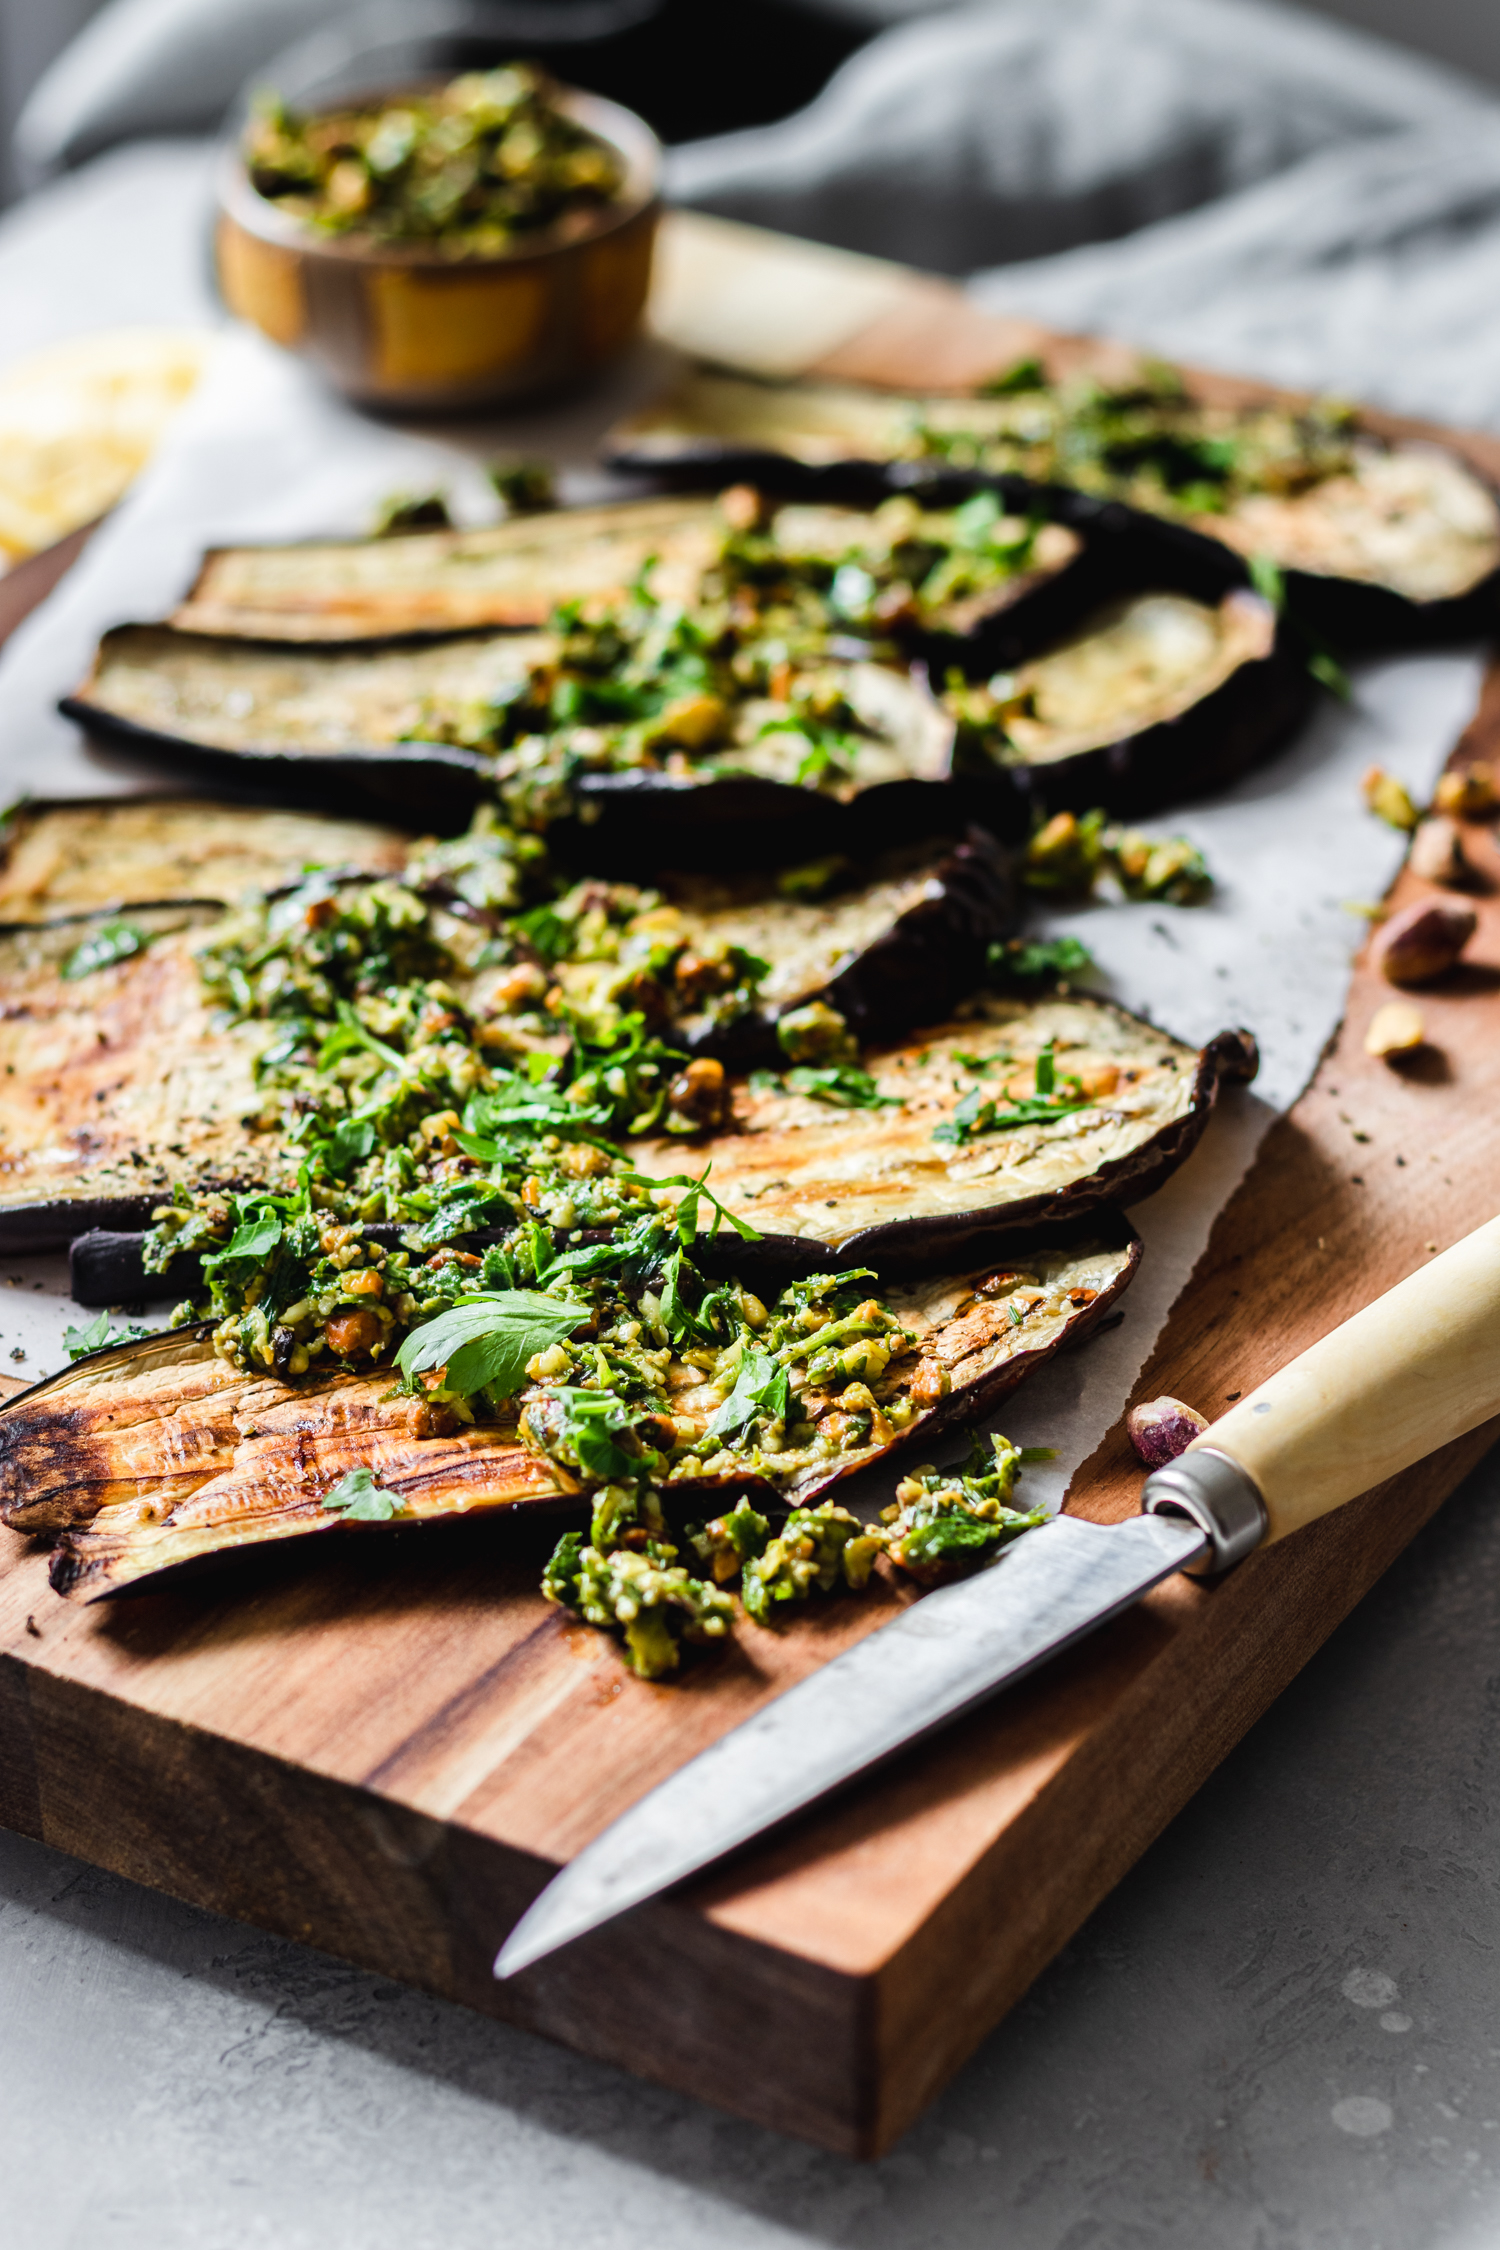 Roasted Eggplant with Pistachio Gremolata